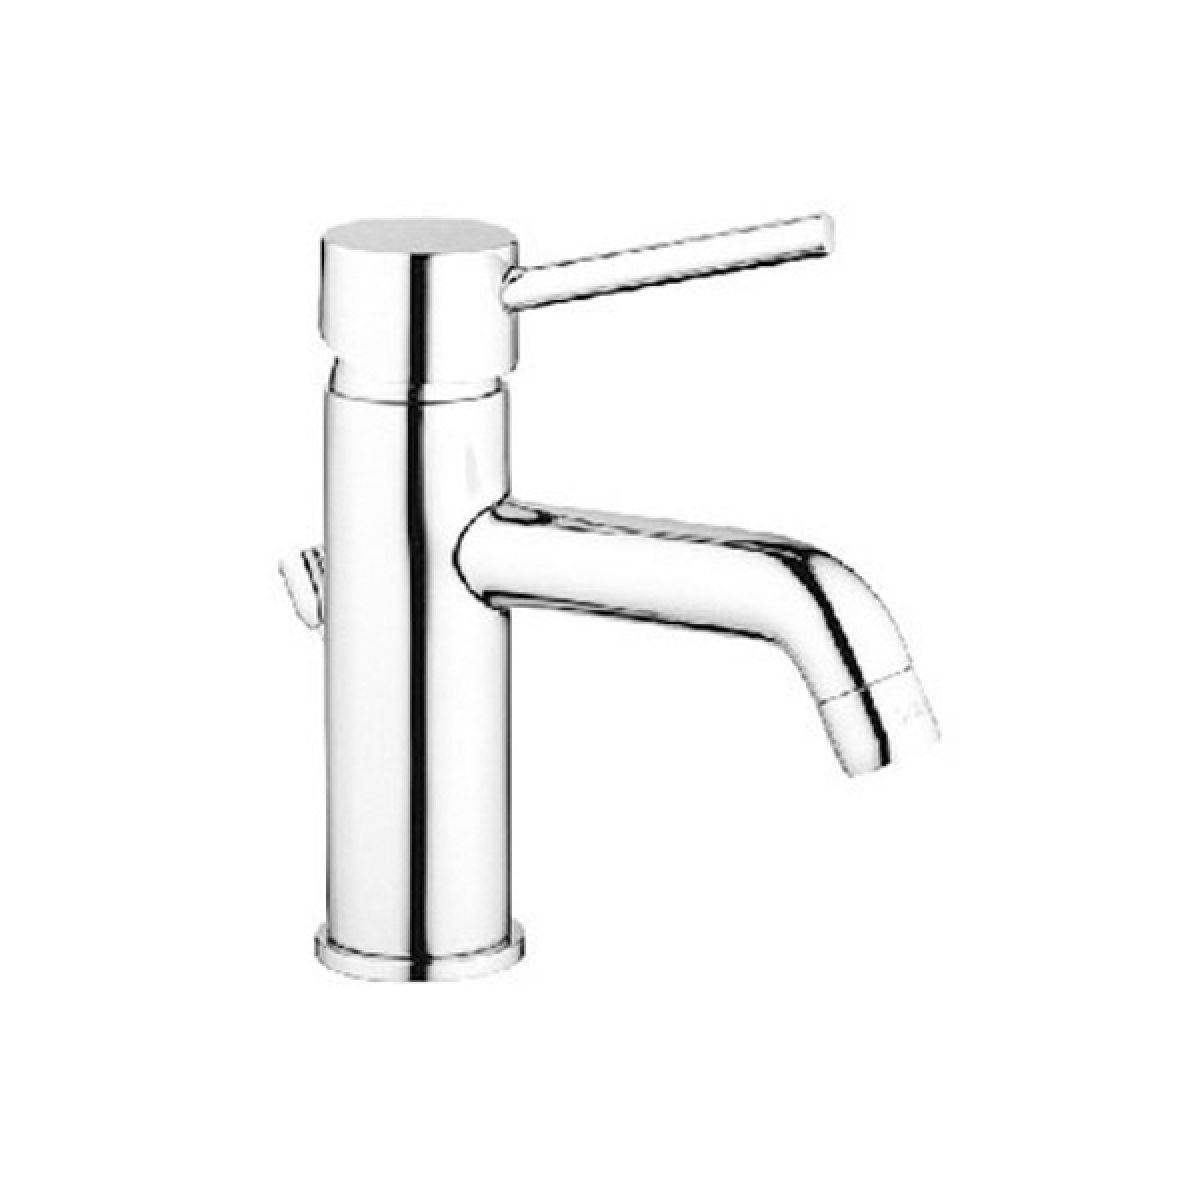 Vitra Minimax S Basin Mixer Tap with Pop-Up Waste